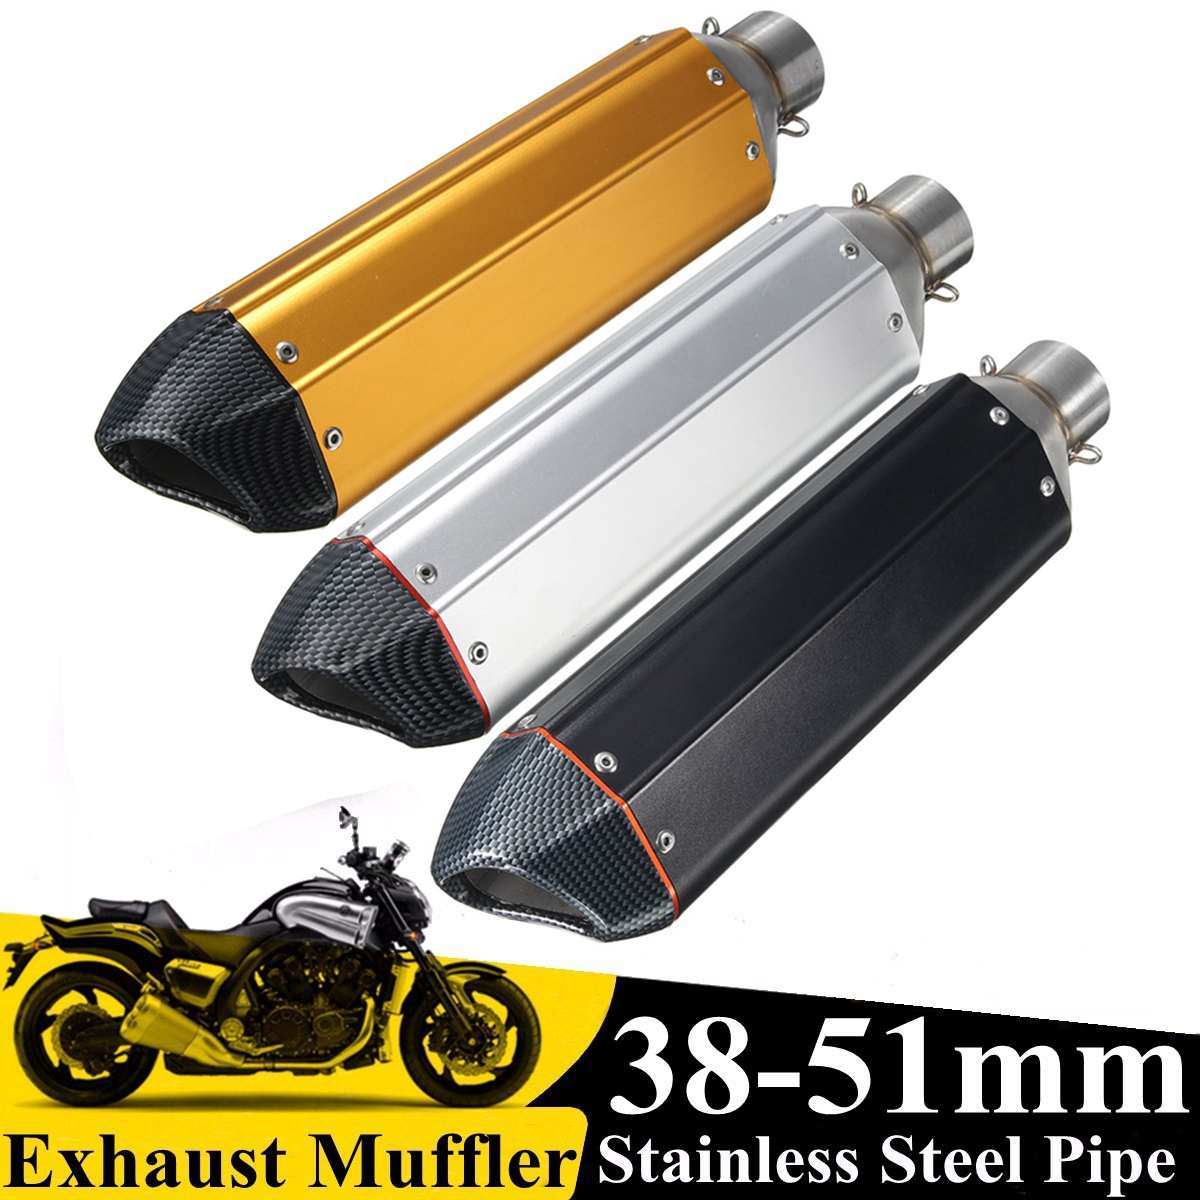 38-51mm Yellow/Silver/Black Hexagonal Motorcycle Scooter Street Bike Carbon fiber Exhaust Muffler Pipe With Silencer Universal38-51mm Yellow/Silver/Black Hexagonal Motorcycle Scooter Street Bike Carbon fiber Exhaust Muffler Pipe With Silencer Universal